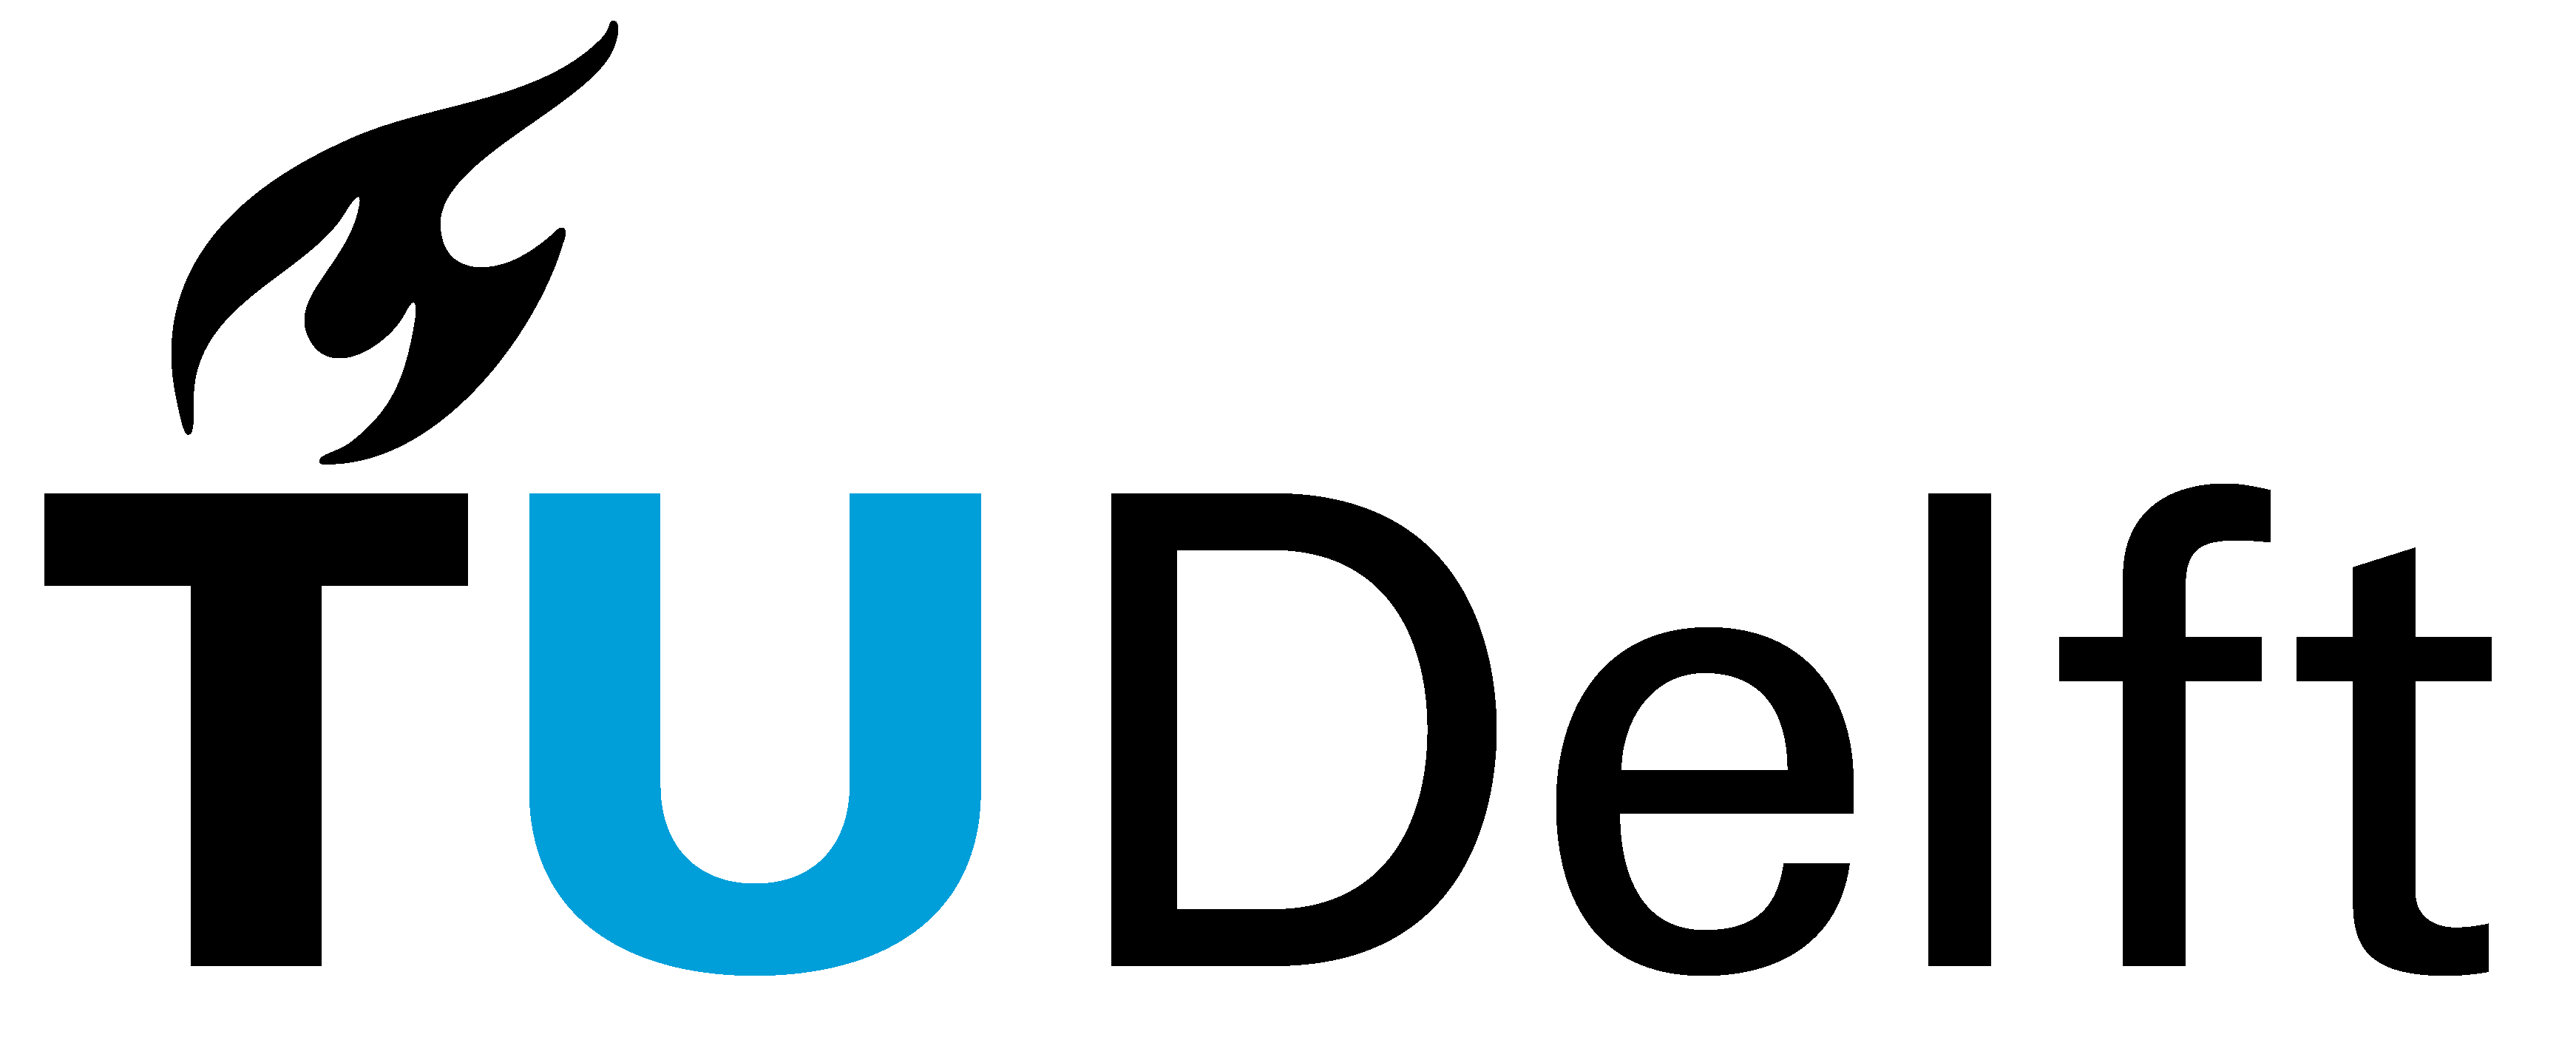 Delft University of Technology logo